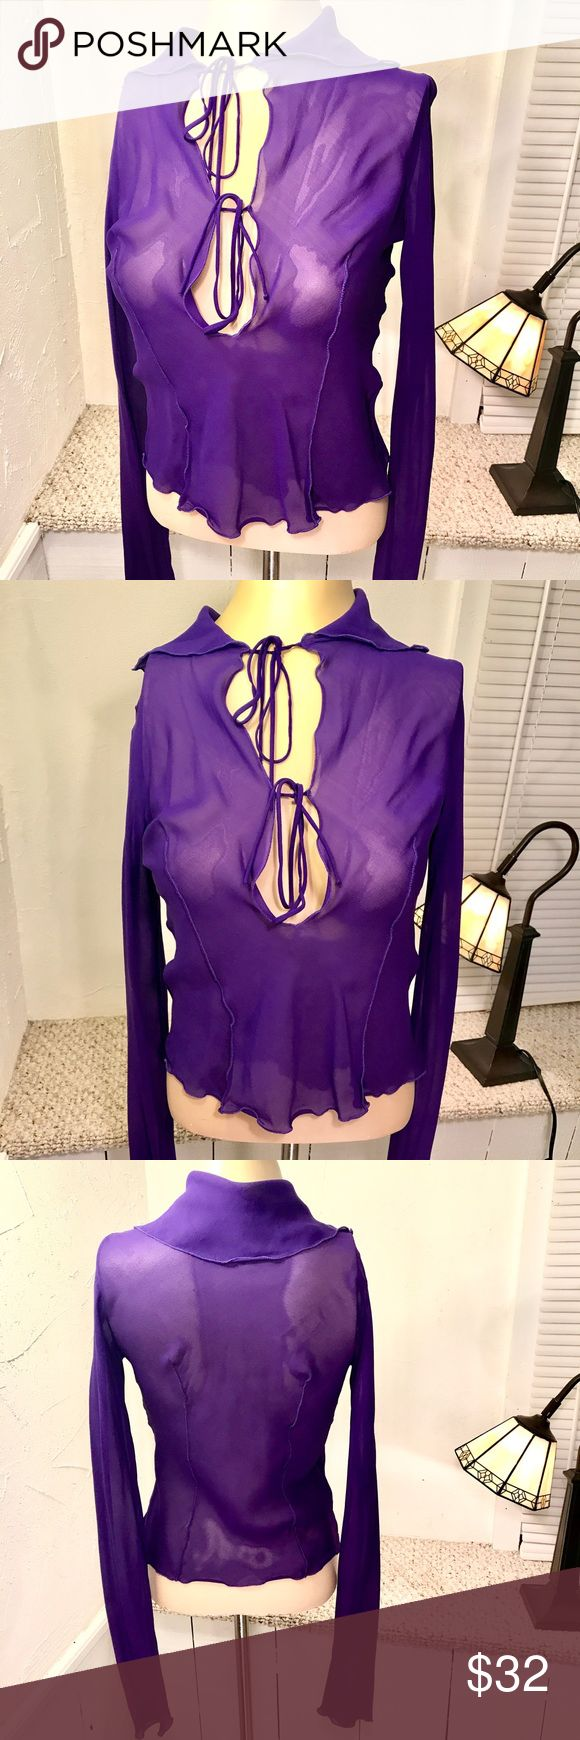 Massimo Danieli purple long sleeve top size 42 Massimo Danieli purple sheer long sleeve blouse. Shawl type collar. Double tie accents creating keyhole effect. 100% silk. Made in Italy. Size 42 / M Massimo Danieli Tops